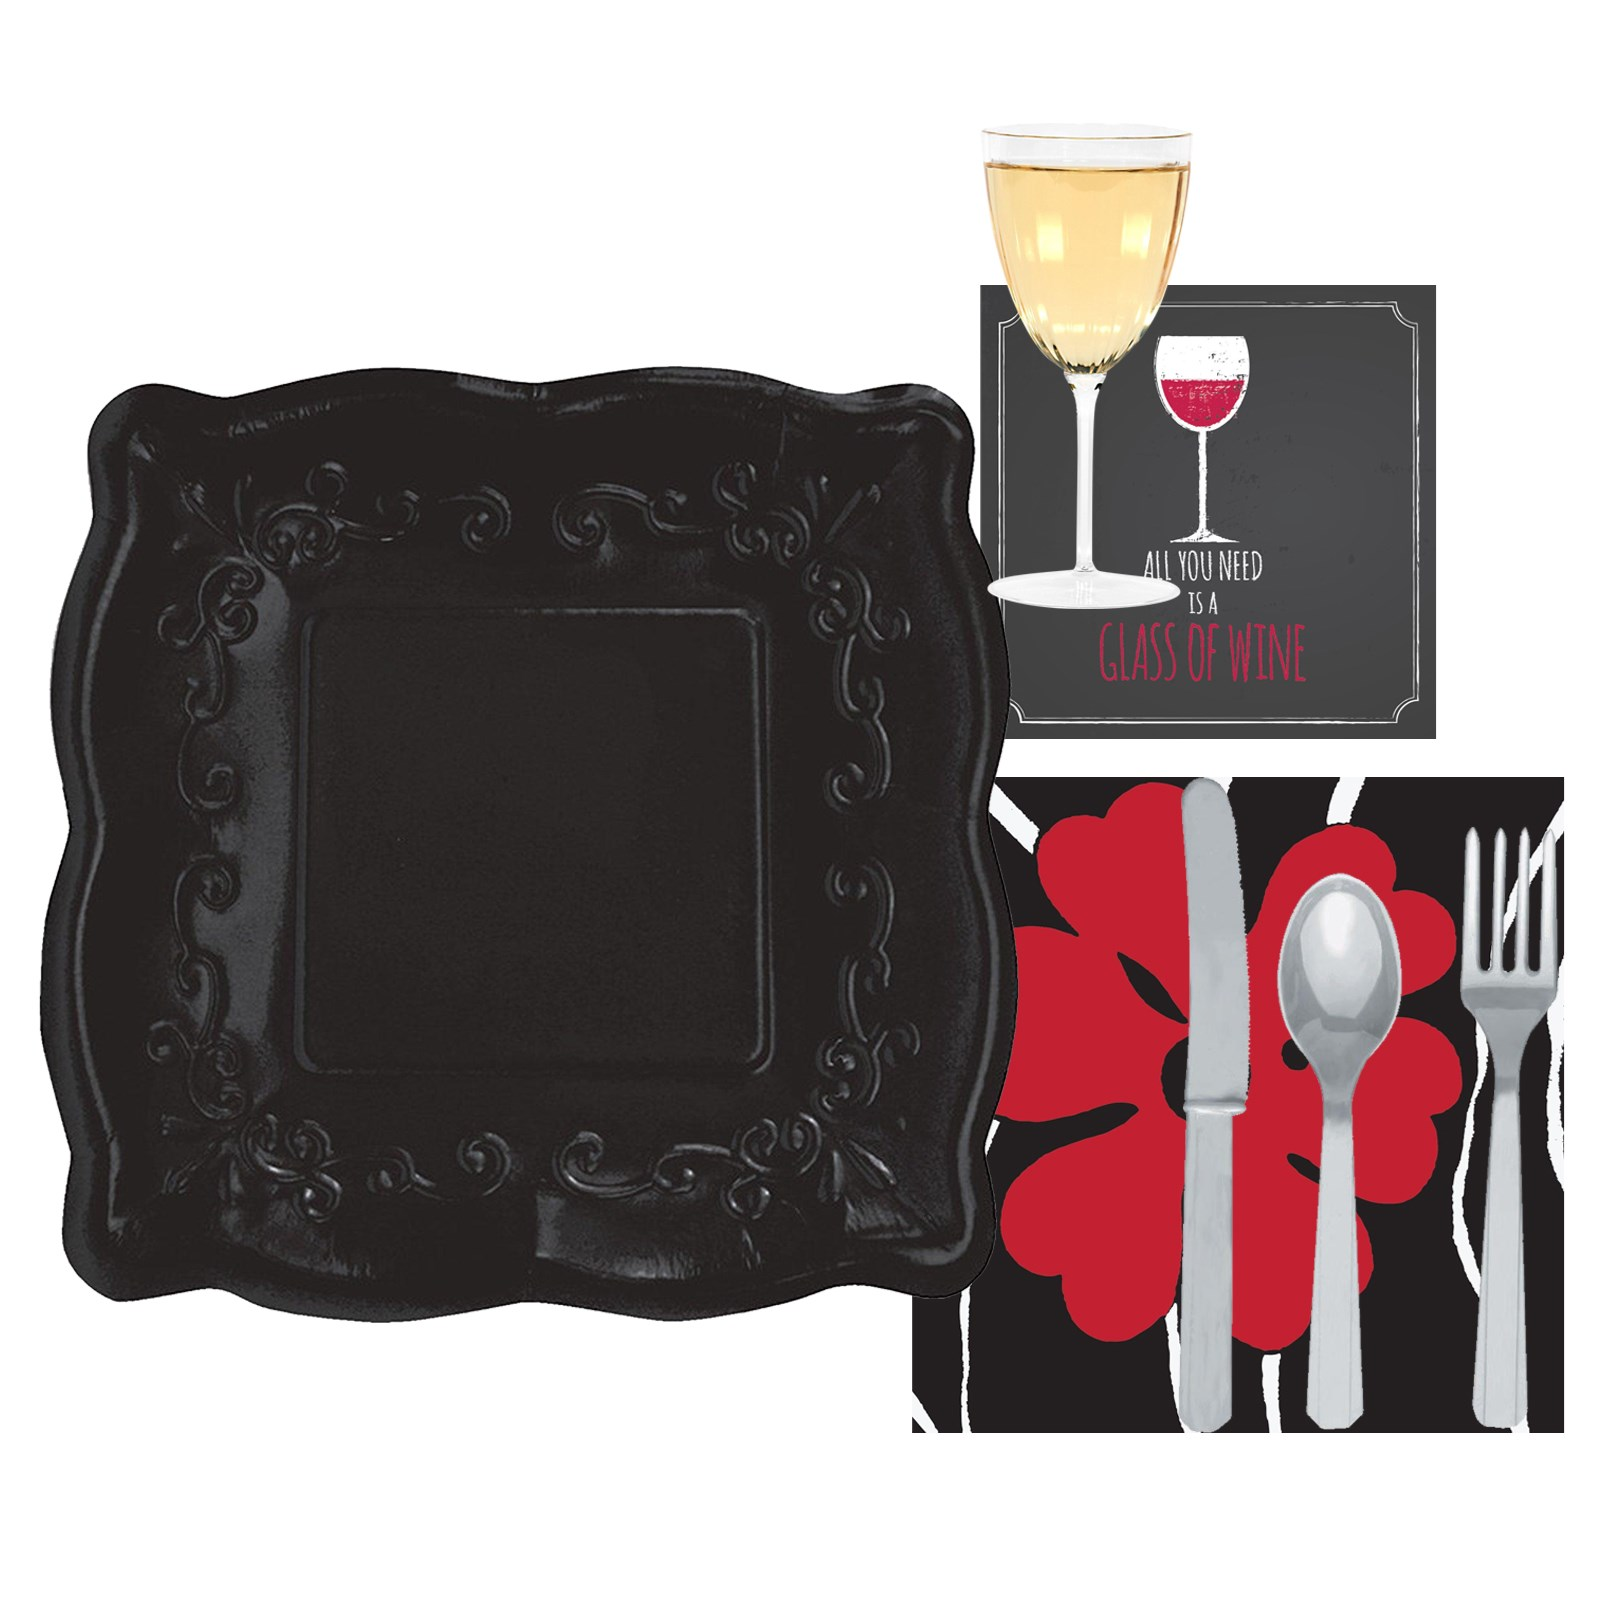 Image of All You Need is a Glass of Wine - Event Pack for 8